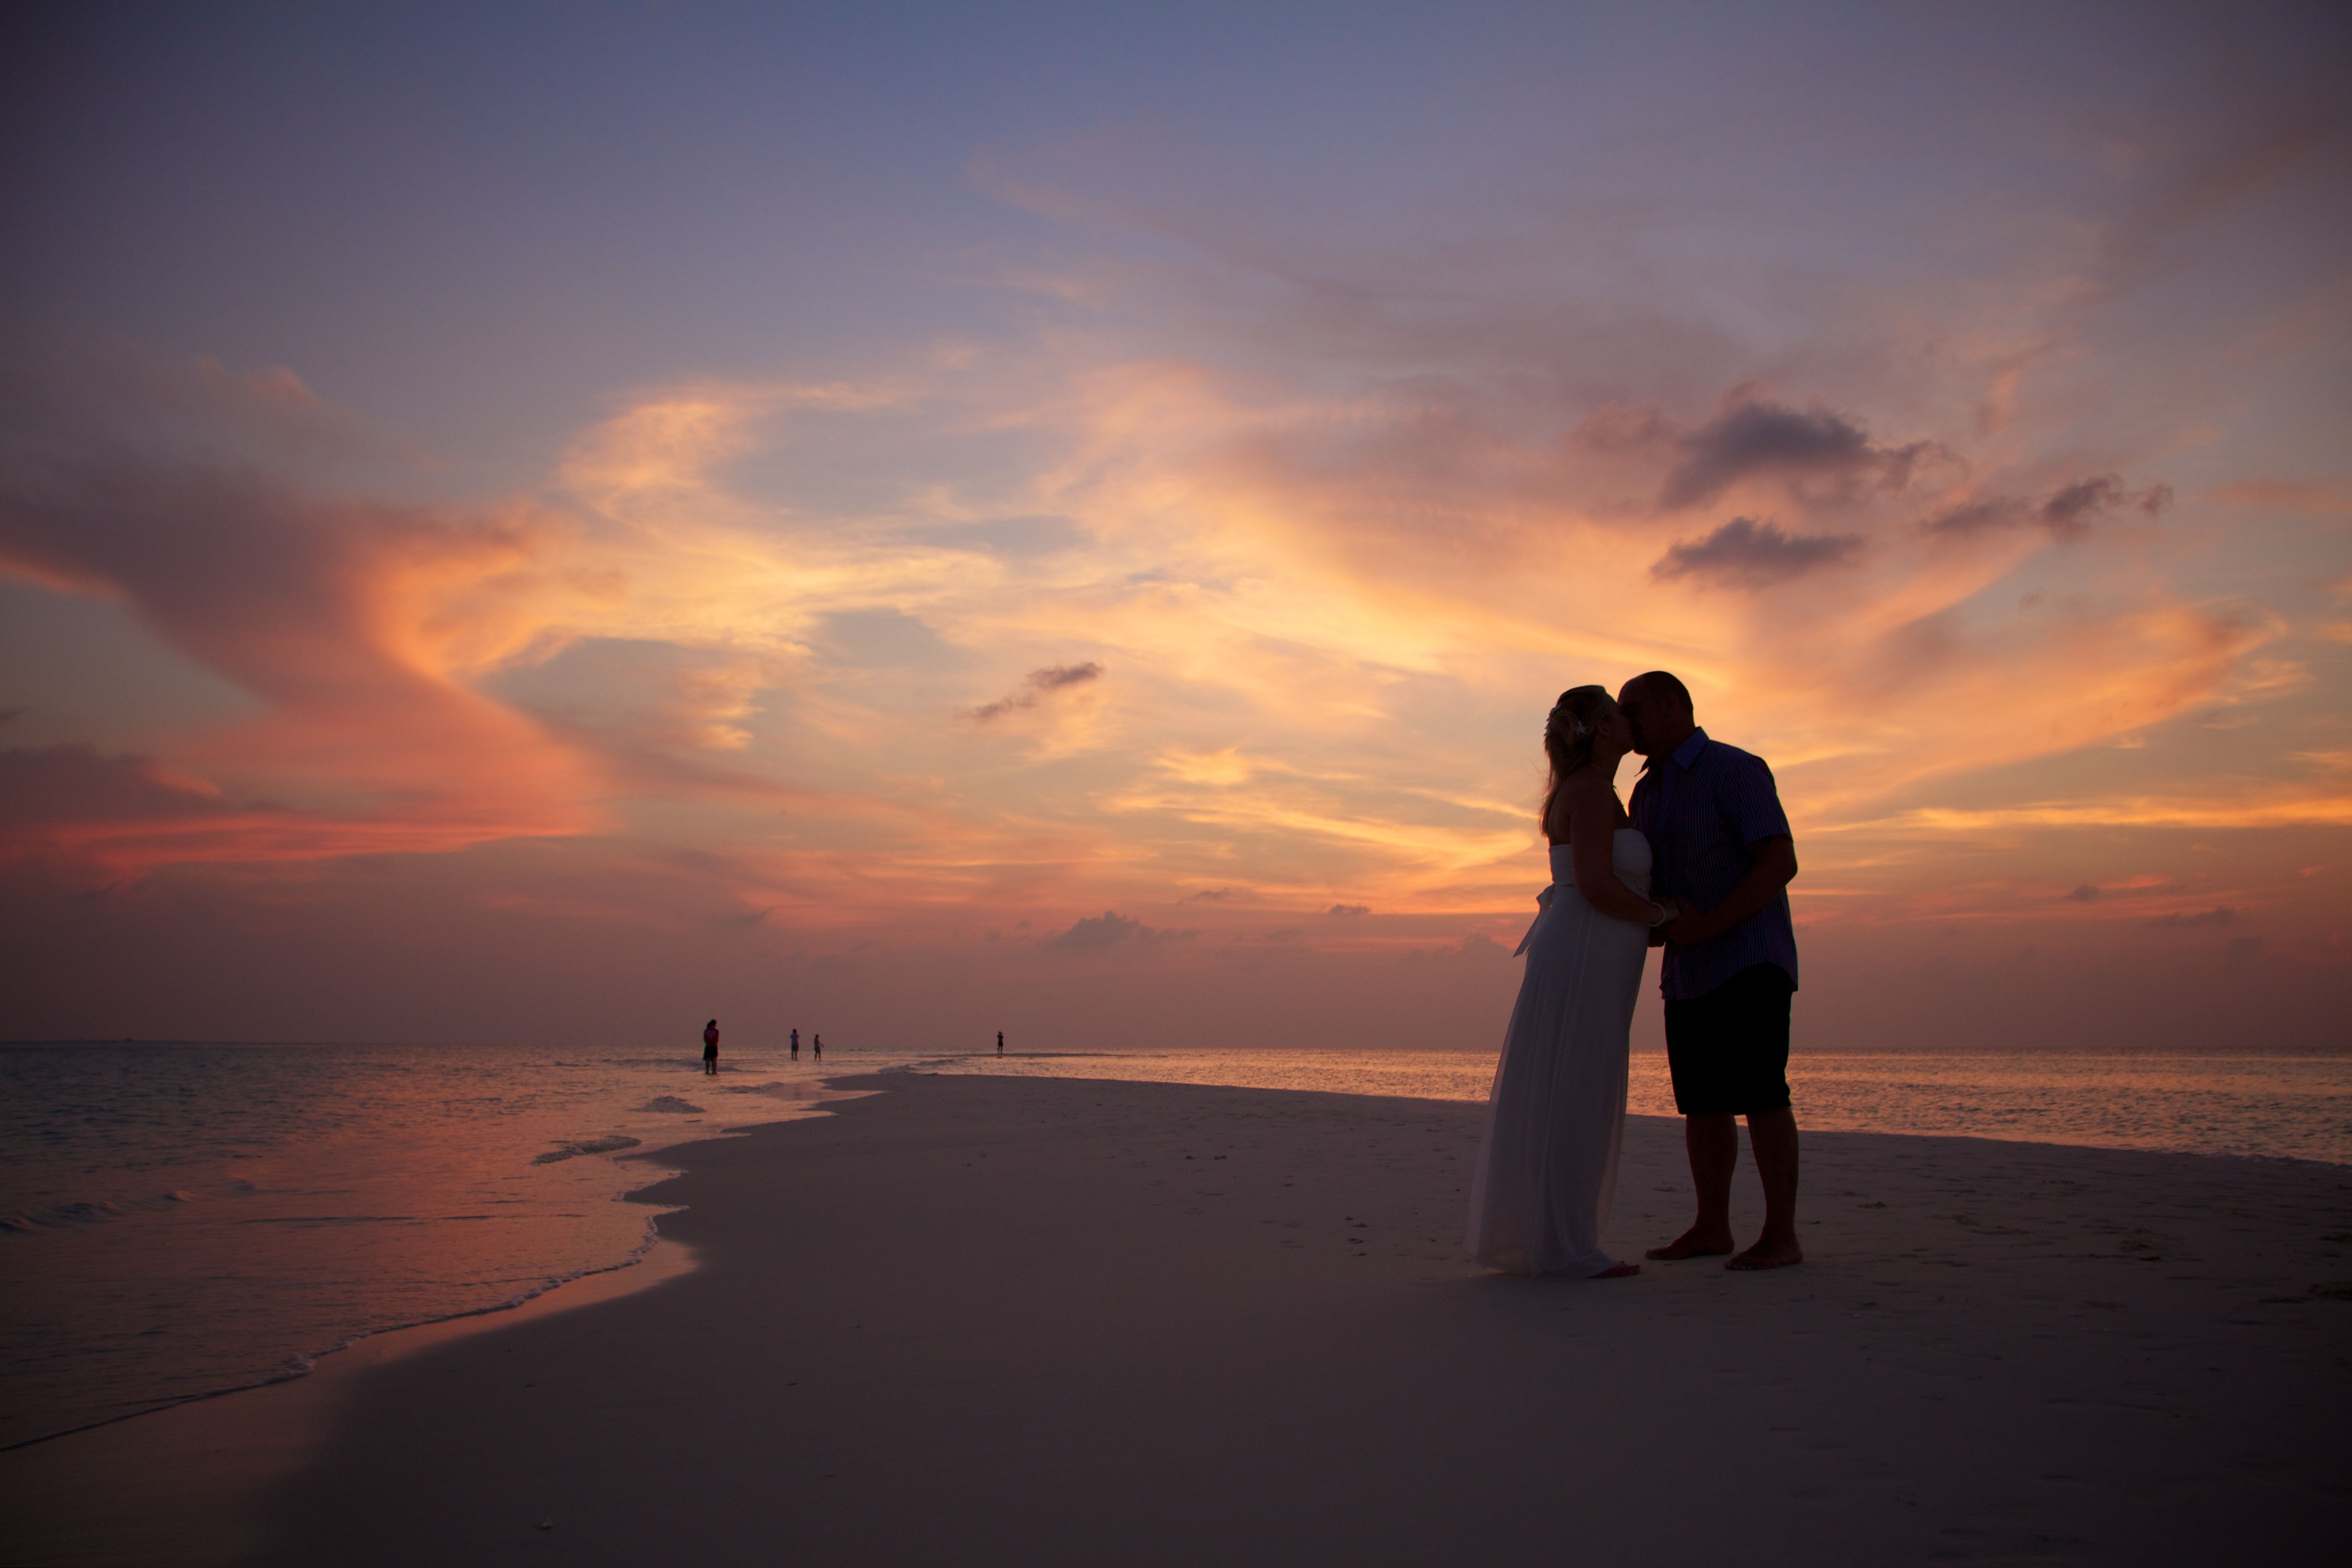 Amazing sunset....sealed with a kiss